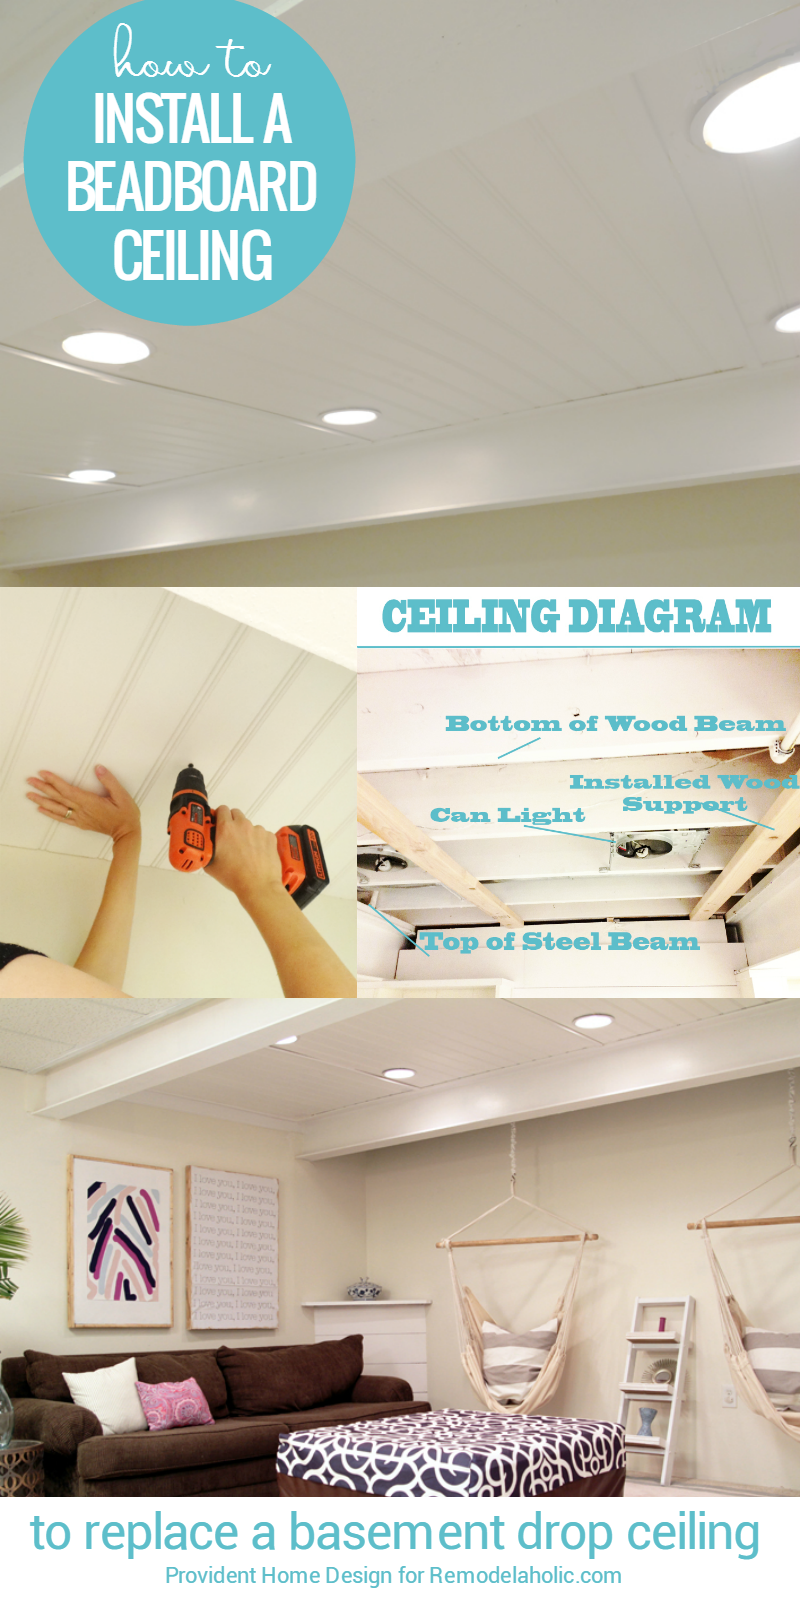 how to install a basement beadboard ceiling to replace a drop ceiling